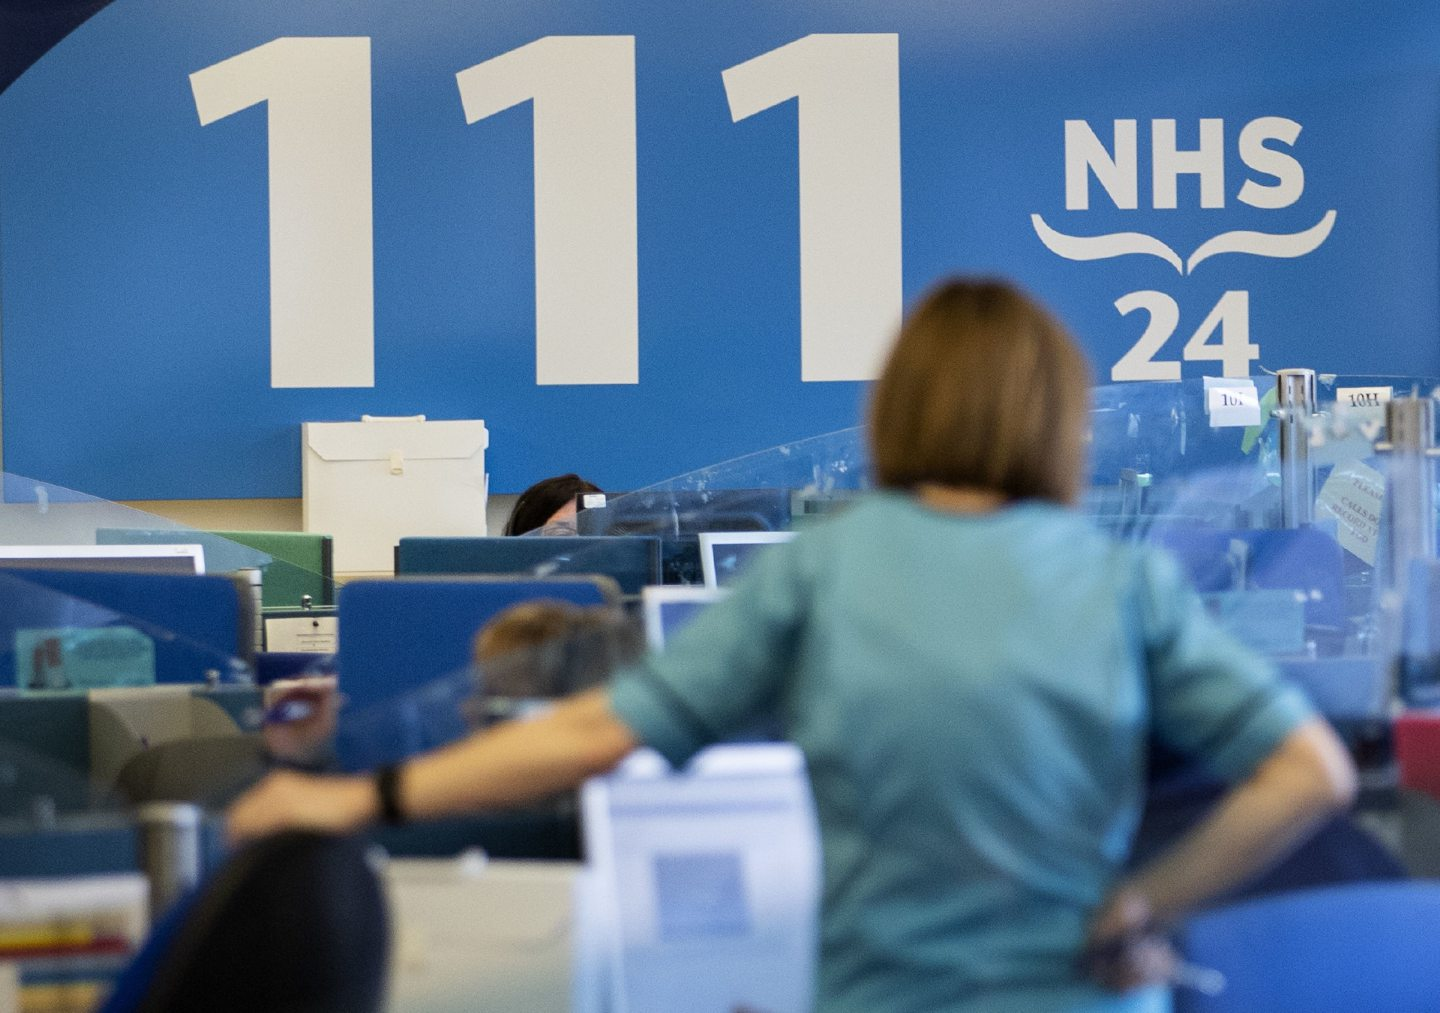 The NHS 24 contact centre at the Golden Jubilee National Hospital in Glasgow.